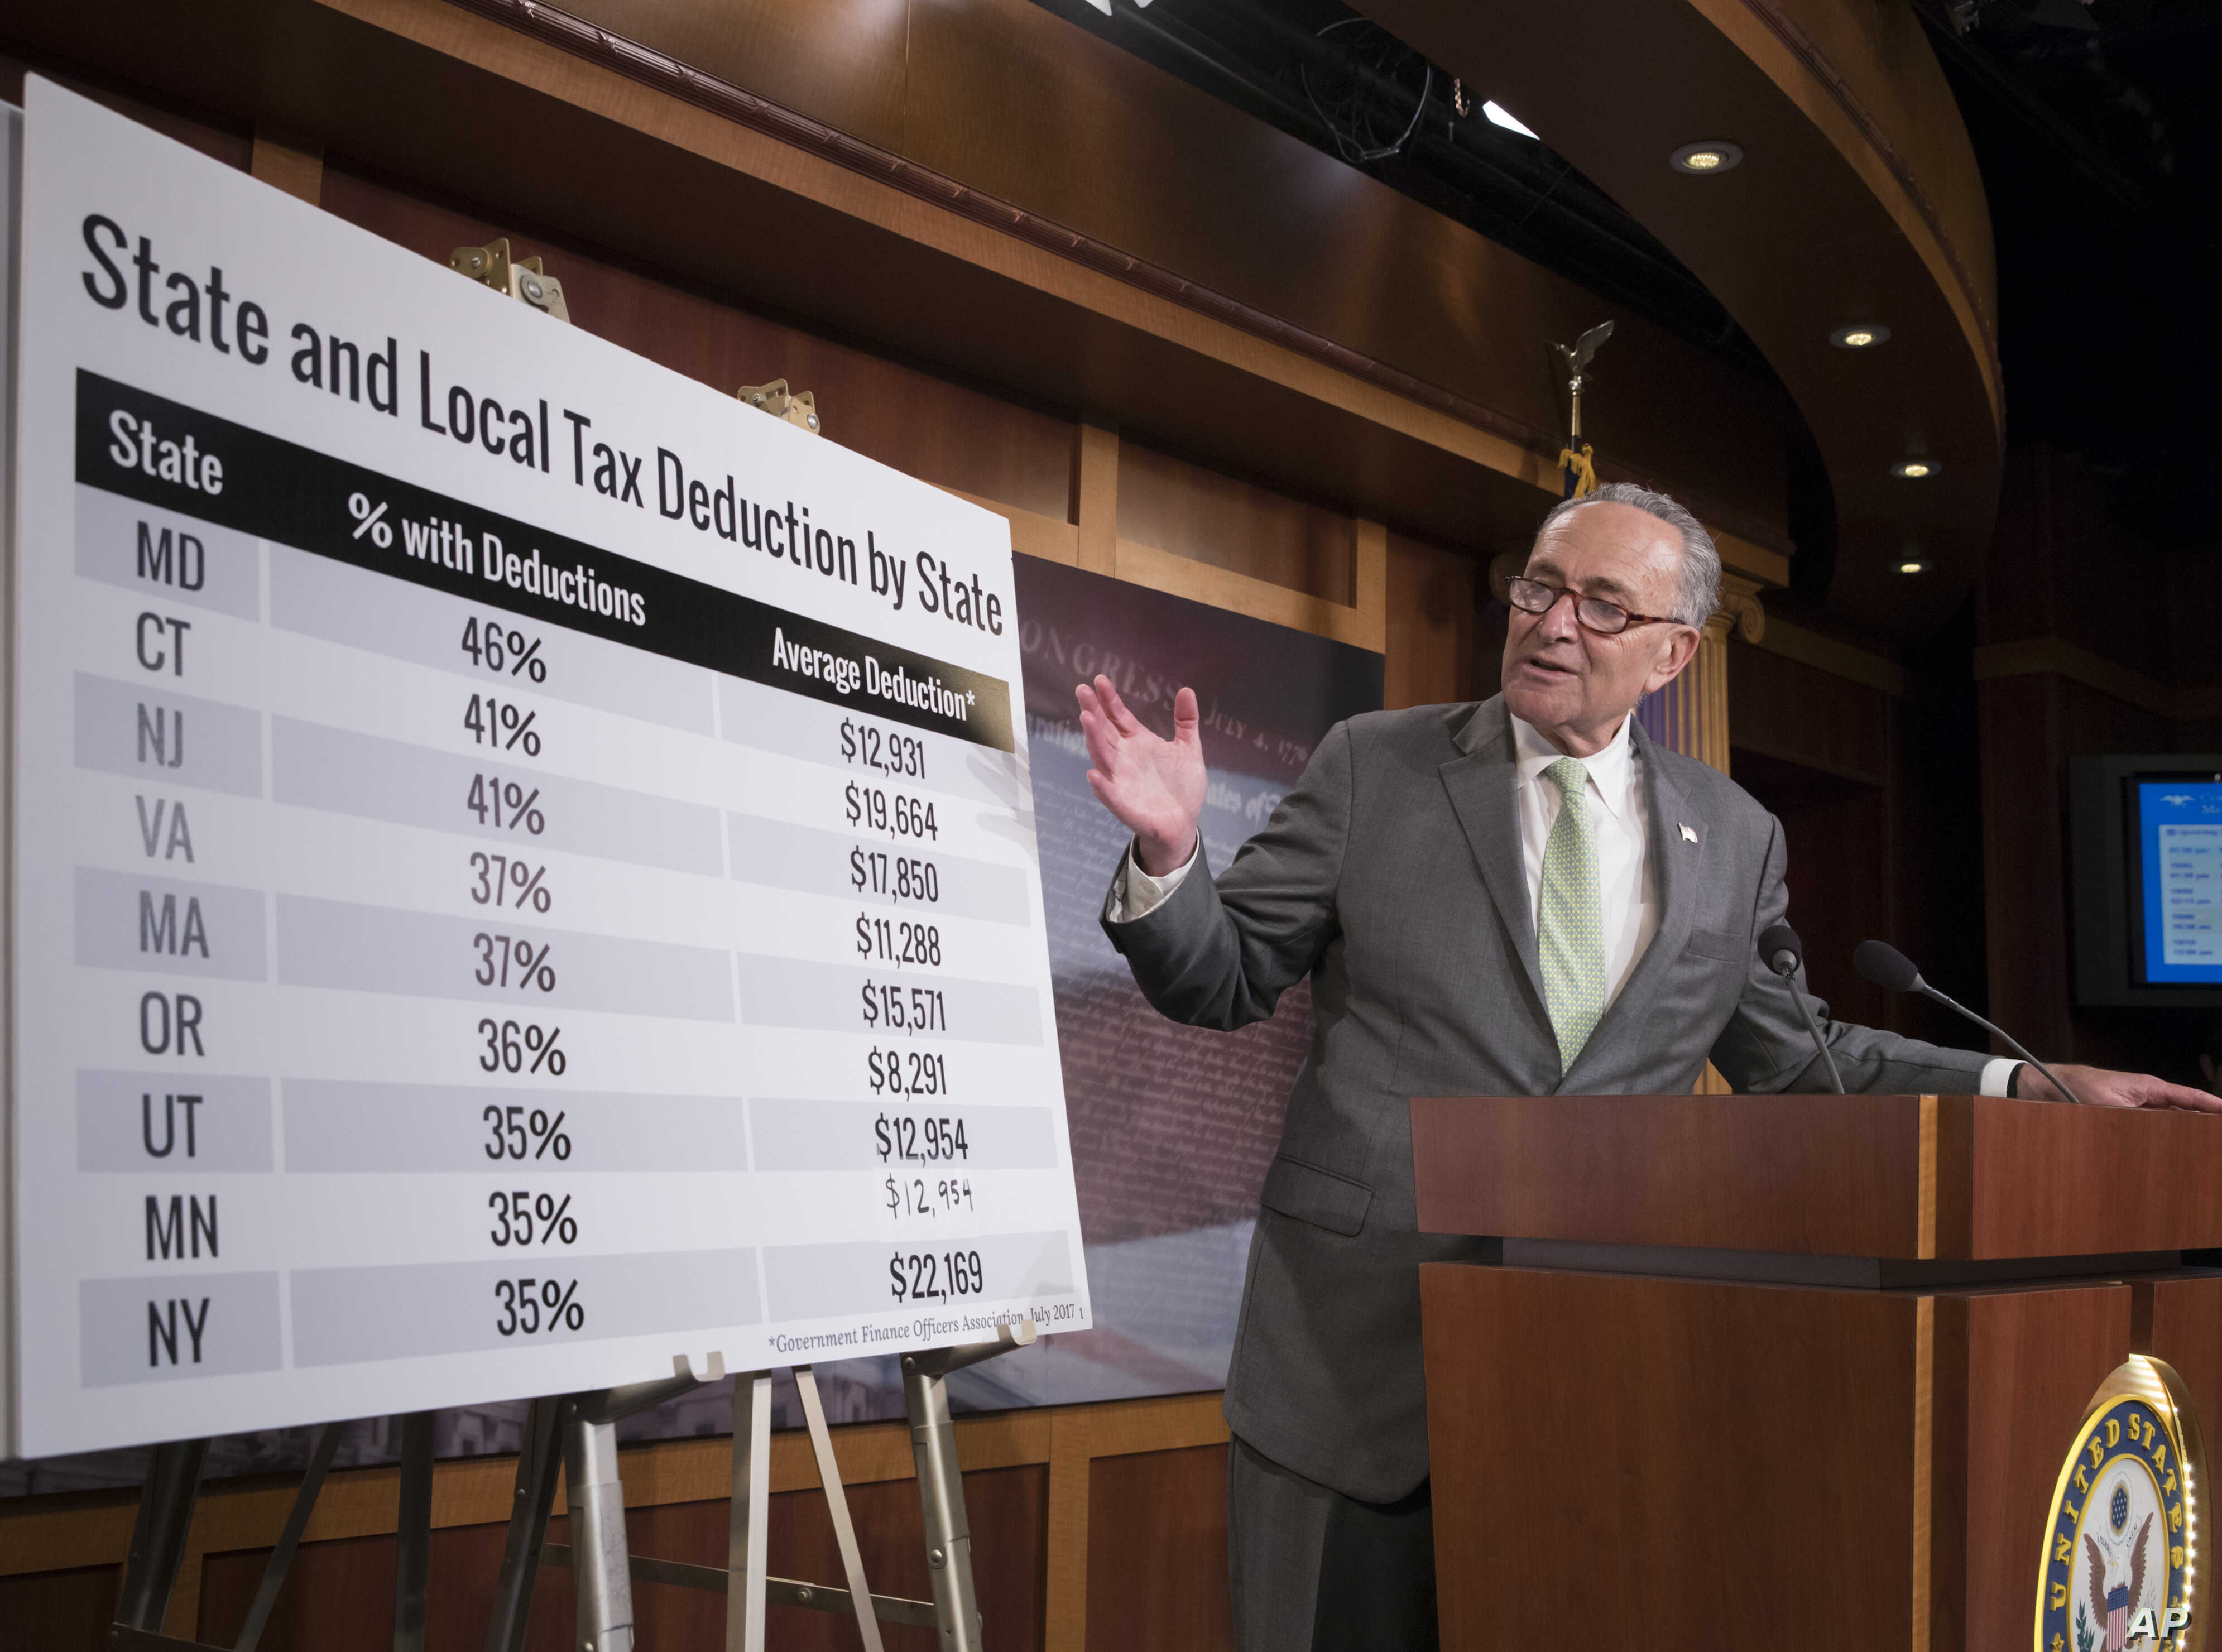 Senate Minority Leader Chuck Schumer, D-N.Y., uses charts to contest the Republican version of tax reform, during a news conference on Capitol Hill in Washington, Oct. 5, 2017.